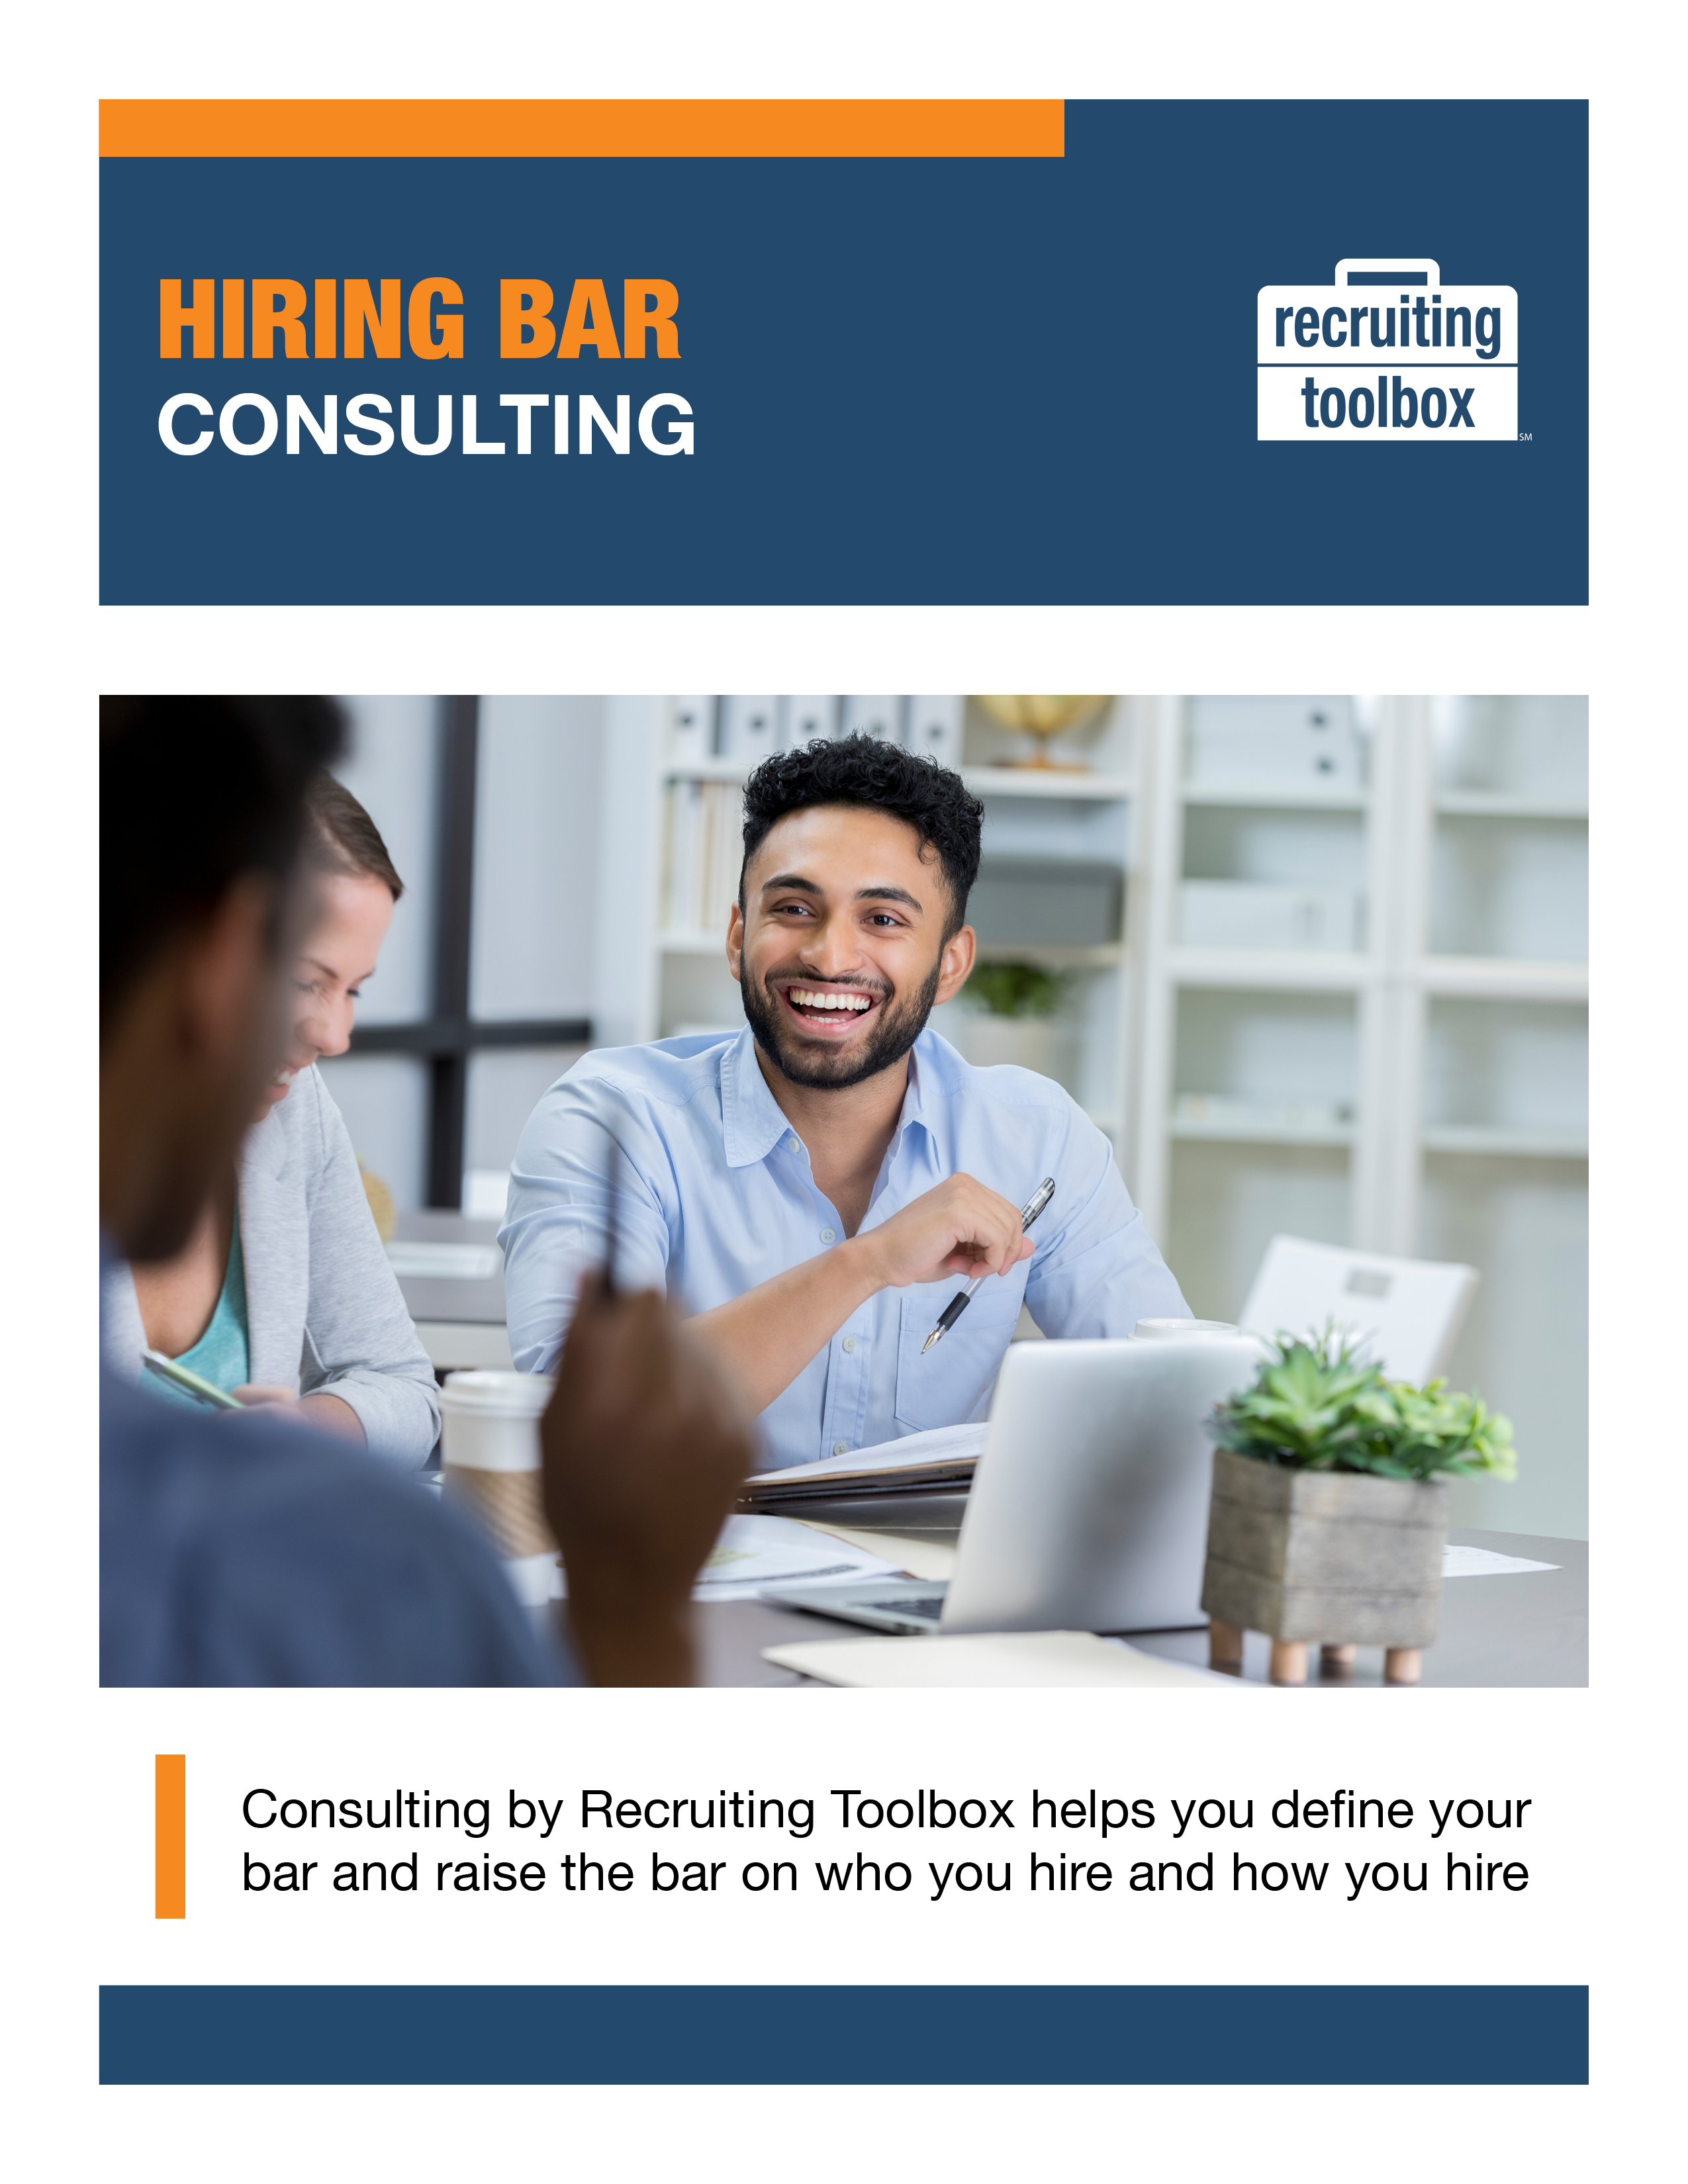 Hiring Bar Consulting Overview